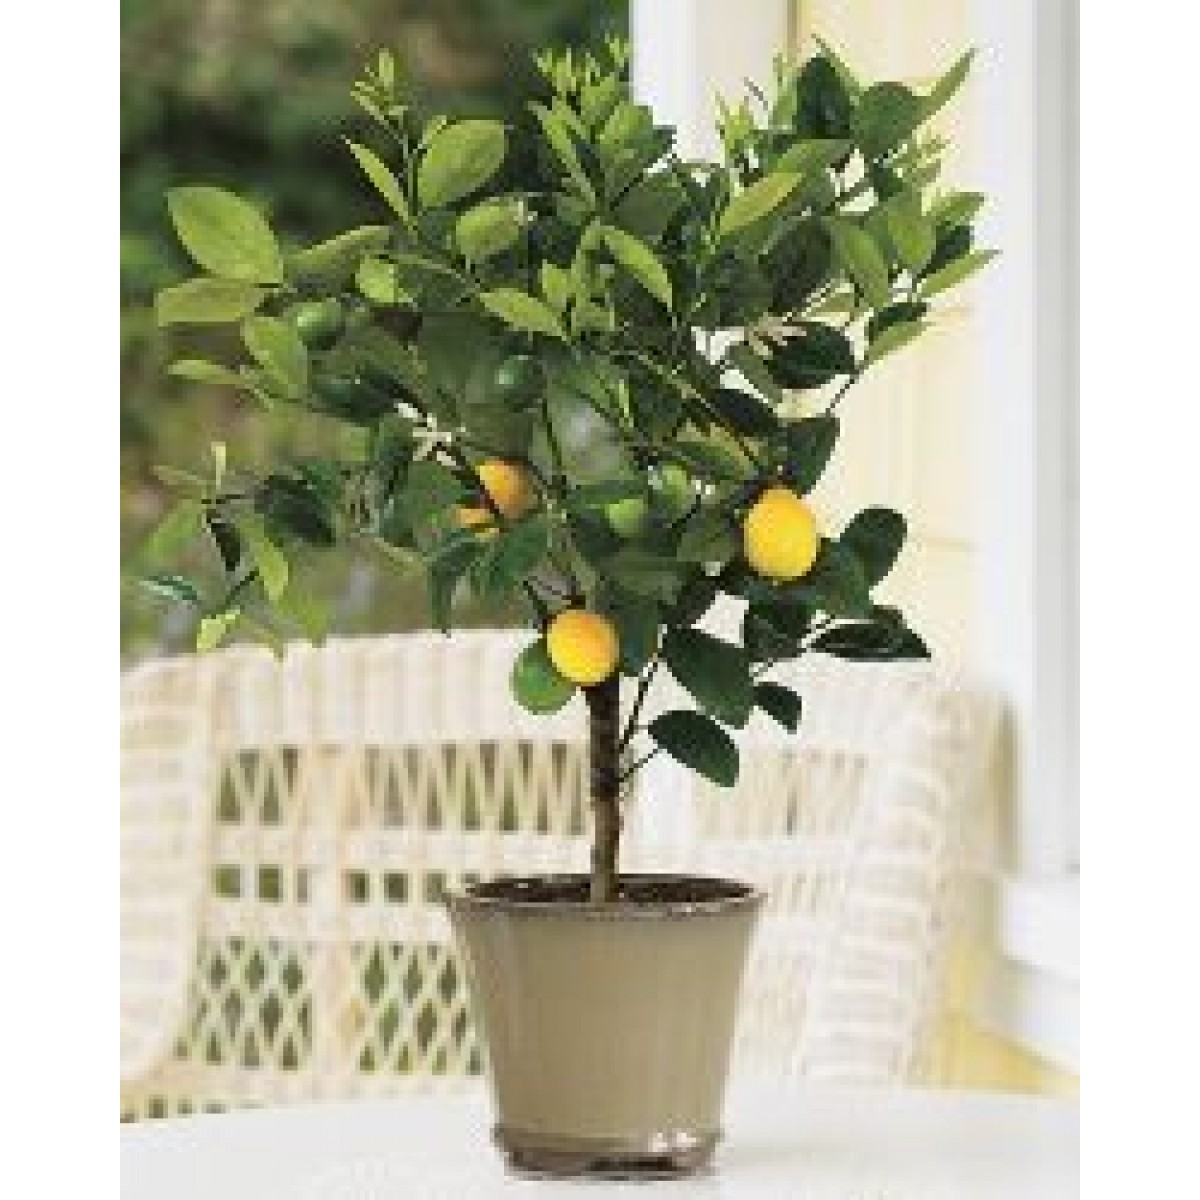 KELLIE: Mature lemon tree for sale